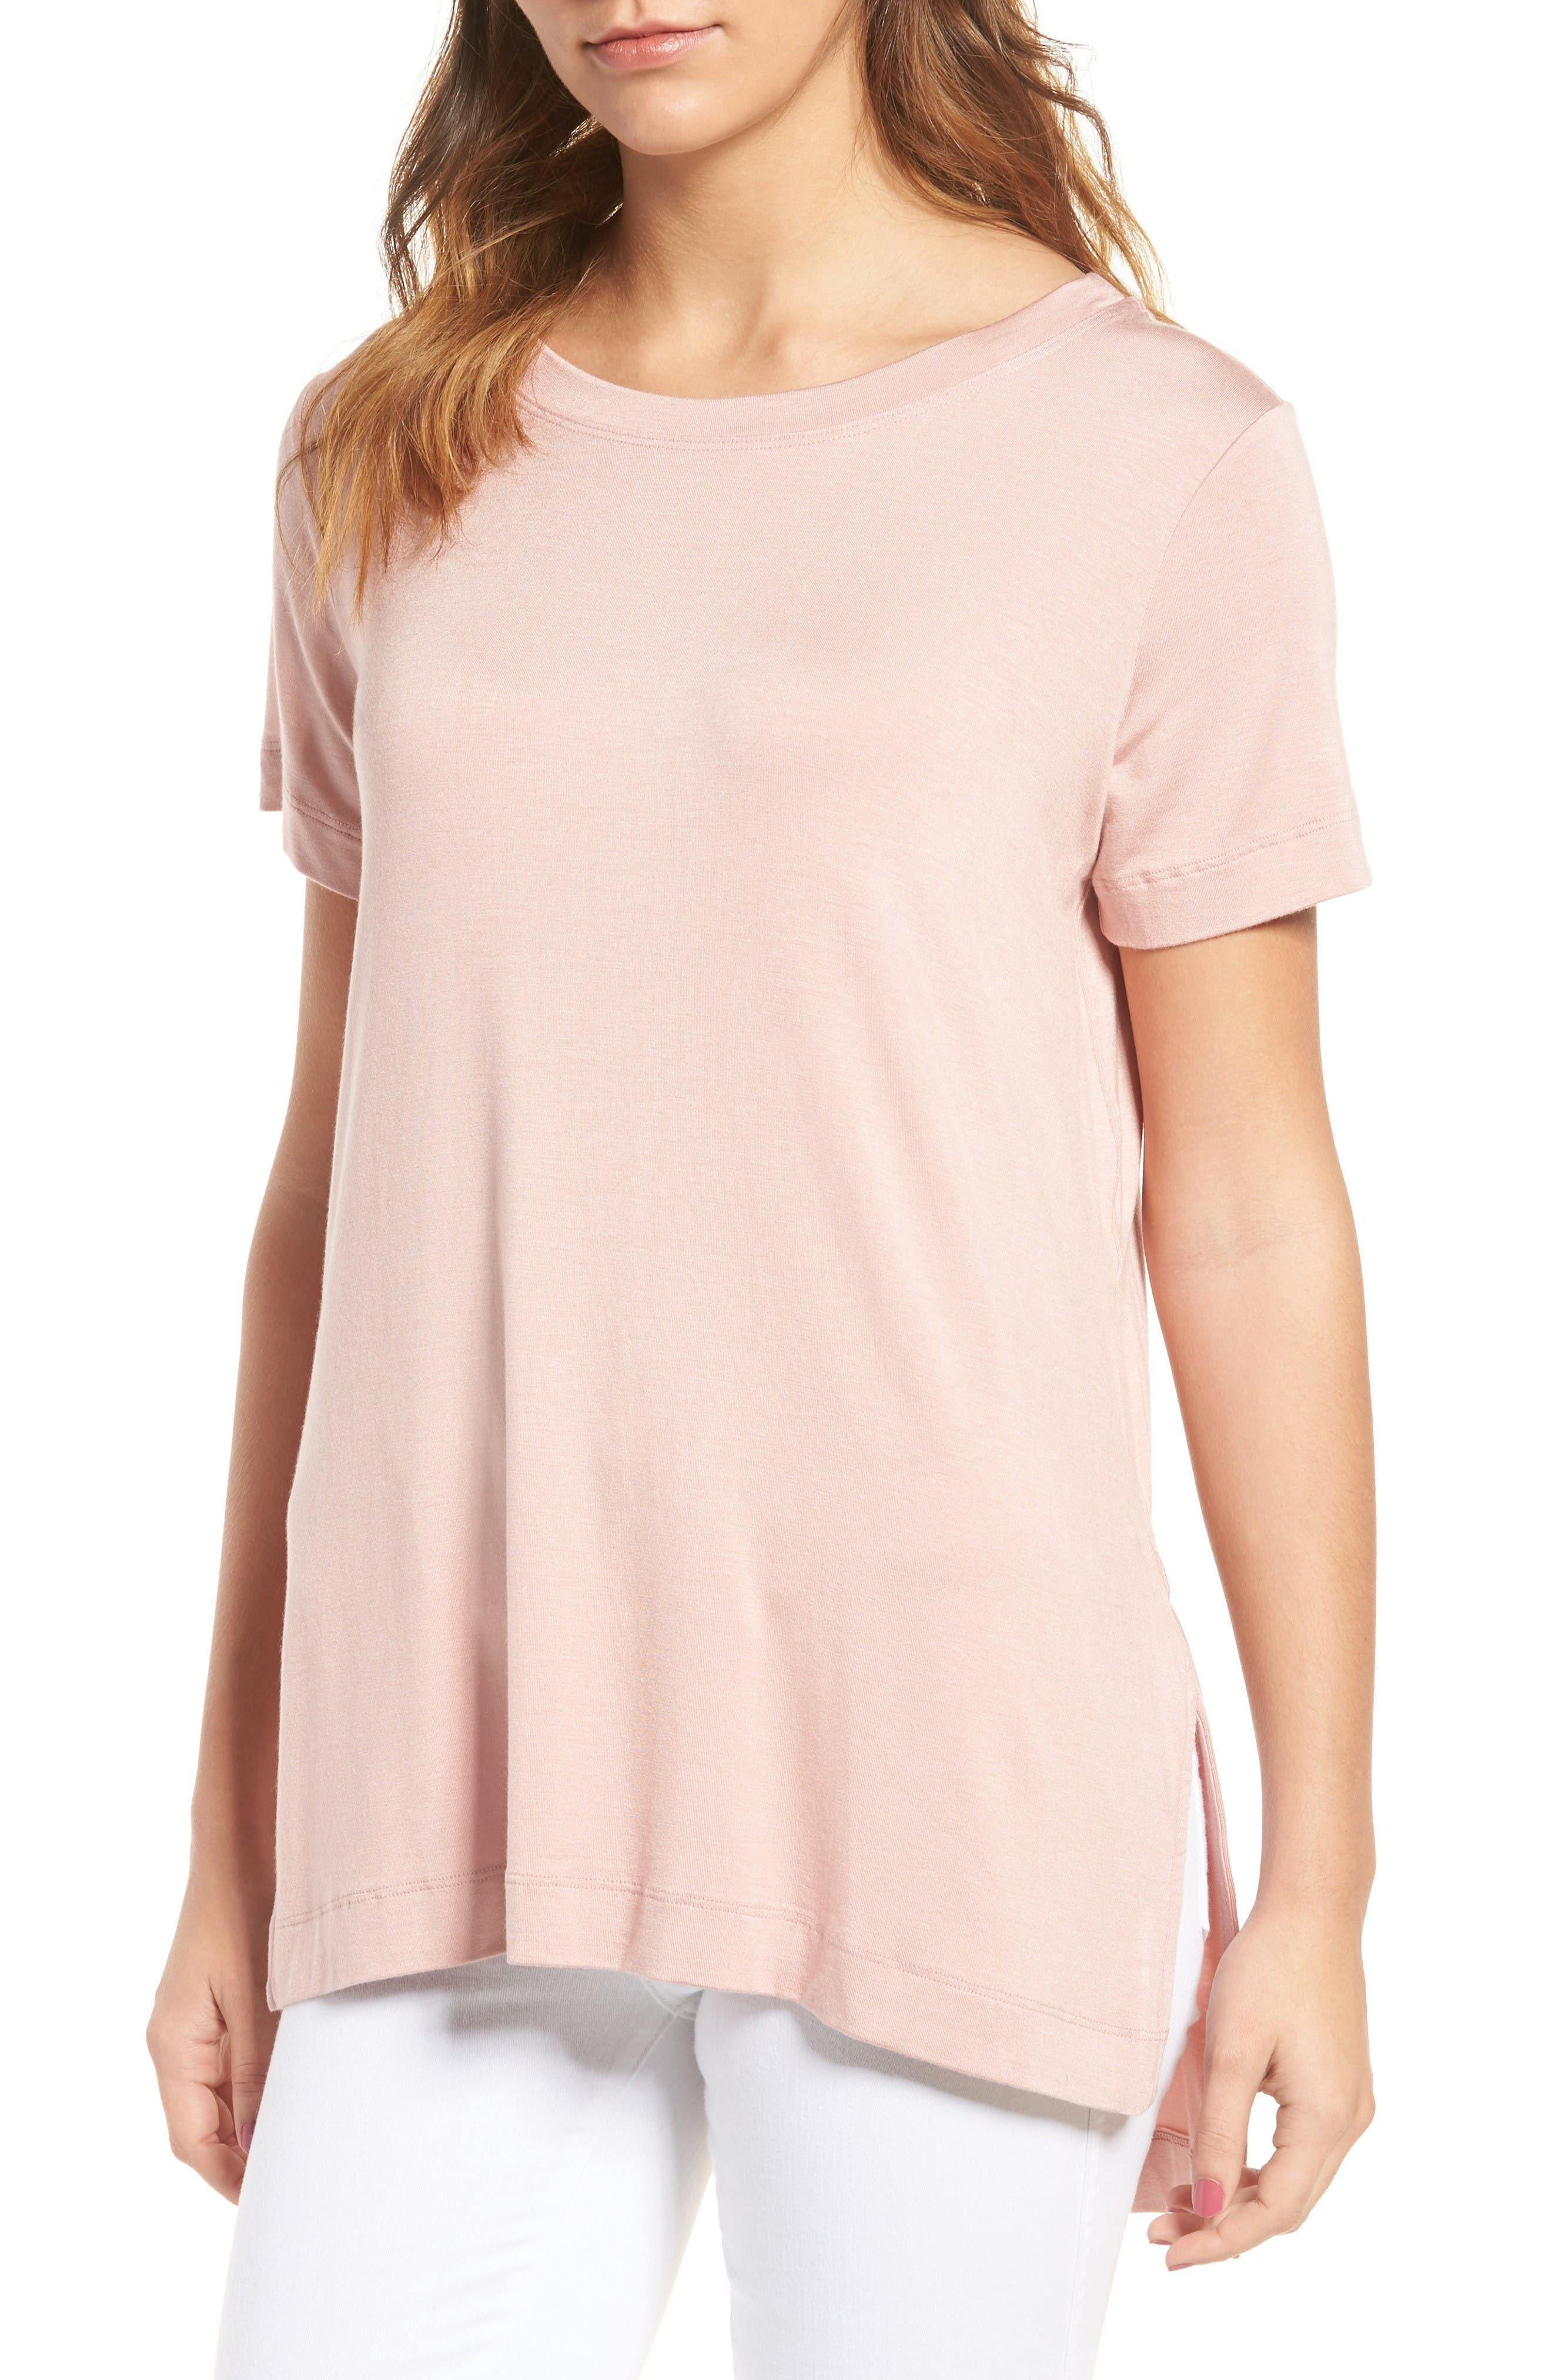 Amour Vert Paola High/Low Tee